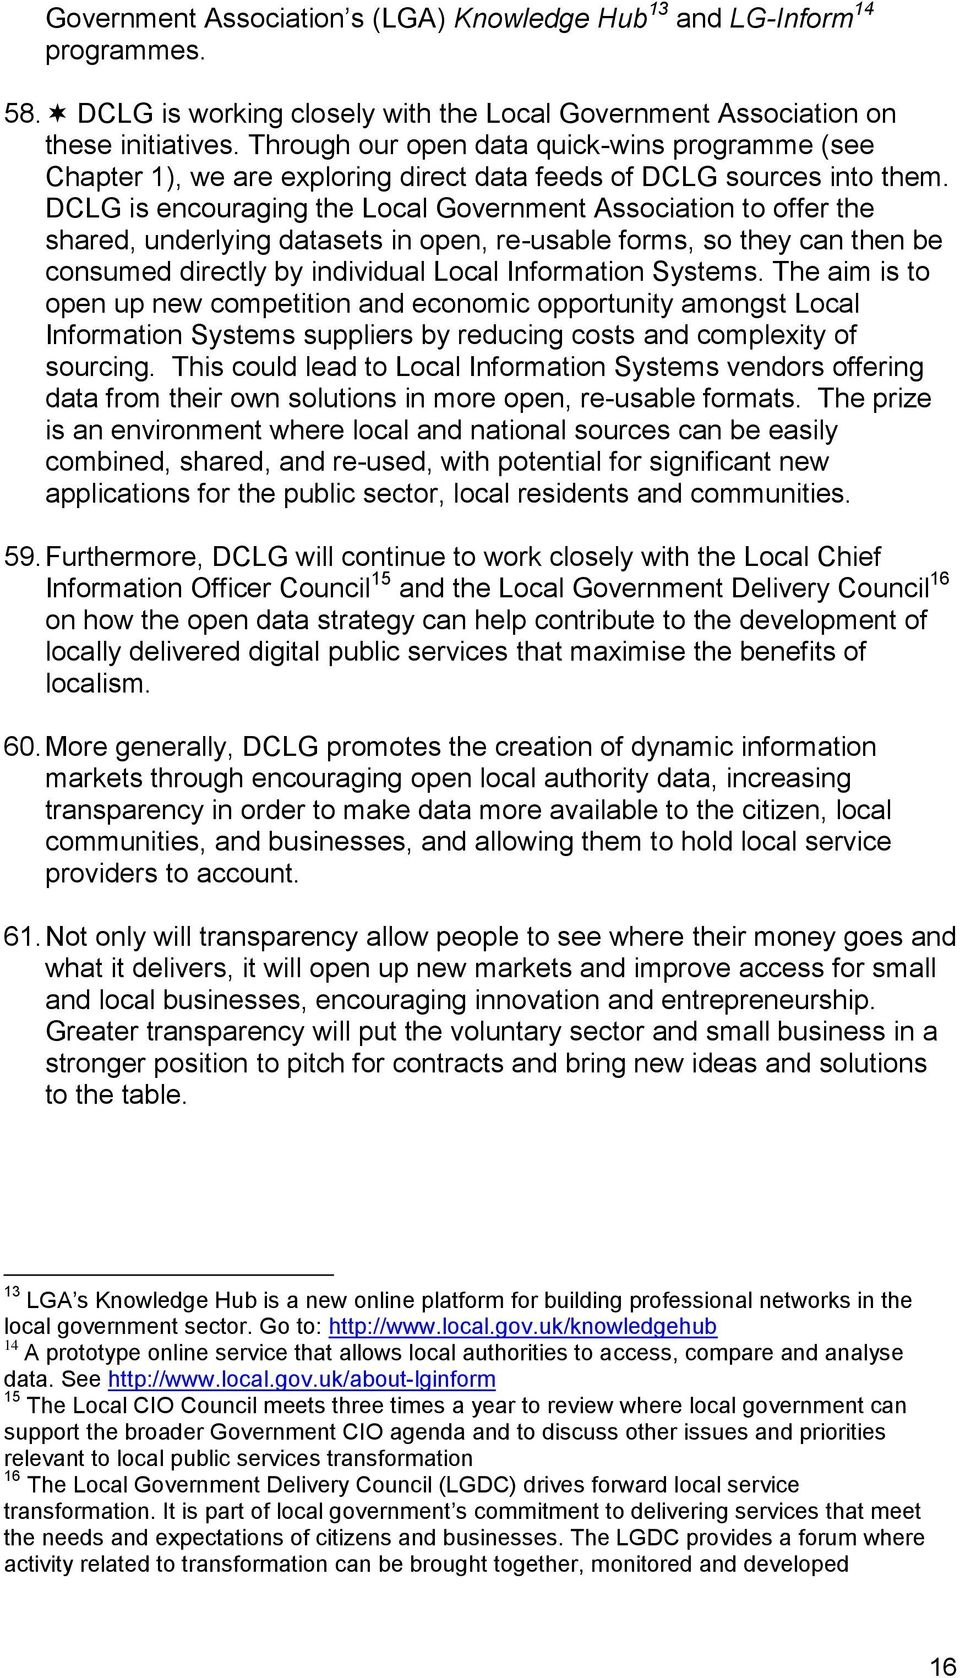 DCLG is encouraging the Local Government Association to offer the shared, underlying datasets in open, re-usable forms, so they can then be consumed directly by individual Local Information Systems.